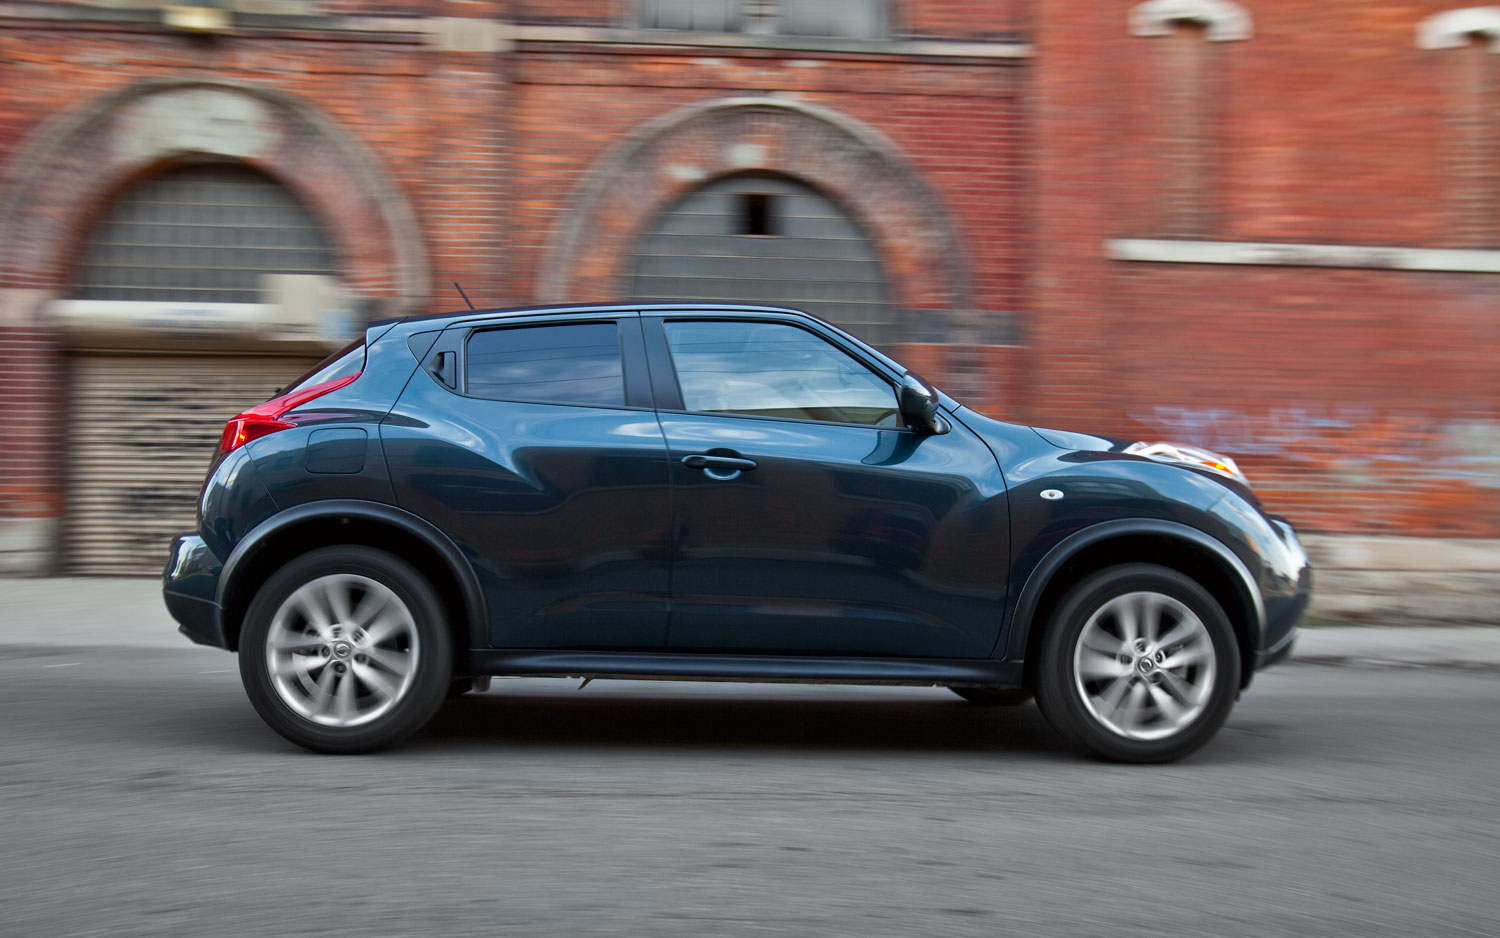 2011 Nissan Juke SV FWD MT Right Side View1